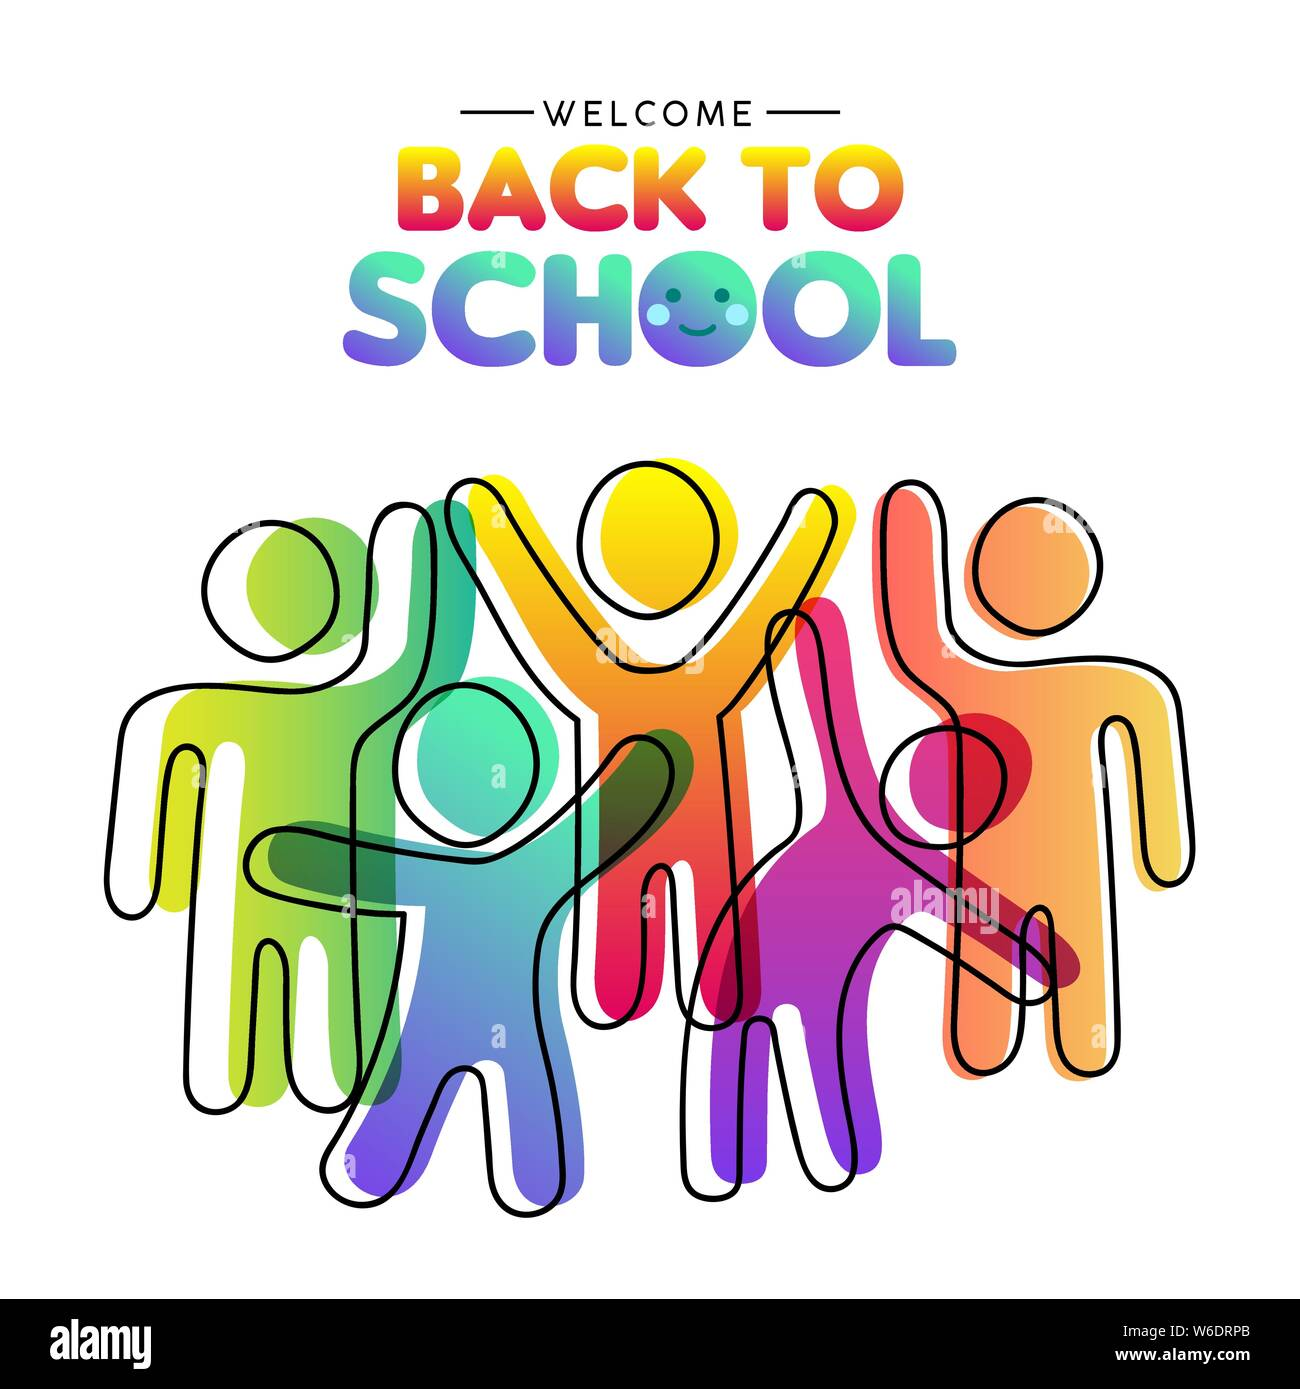 Welcome back to school card illustration of diverse colorful student group together. Children classmates concept in modern gradient color style. Stock Vector